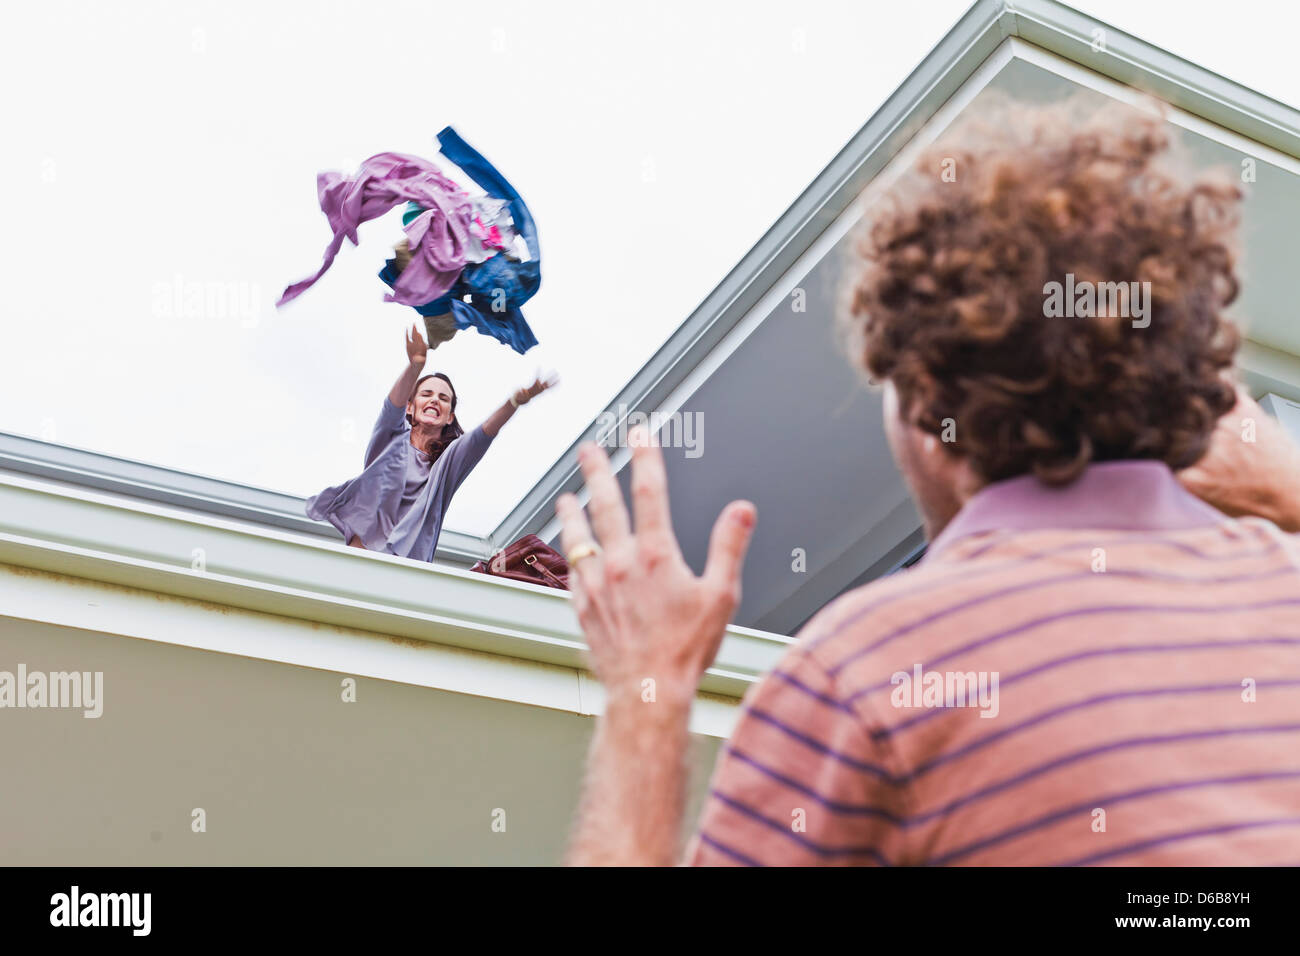 Woman throwing out boyfriends clothes - Stock Image